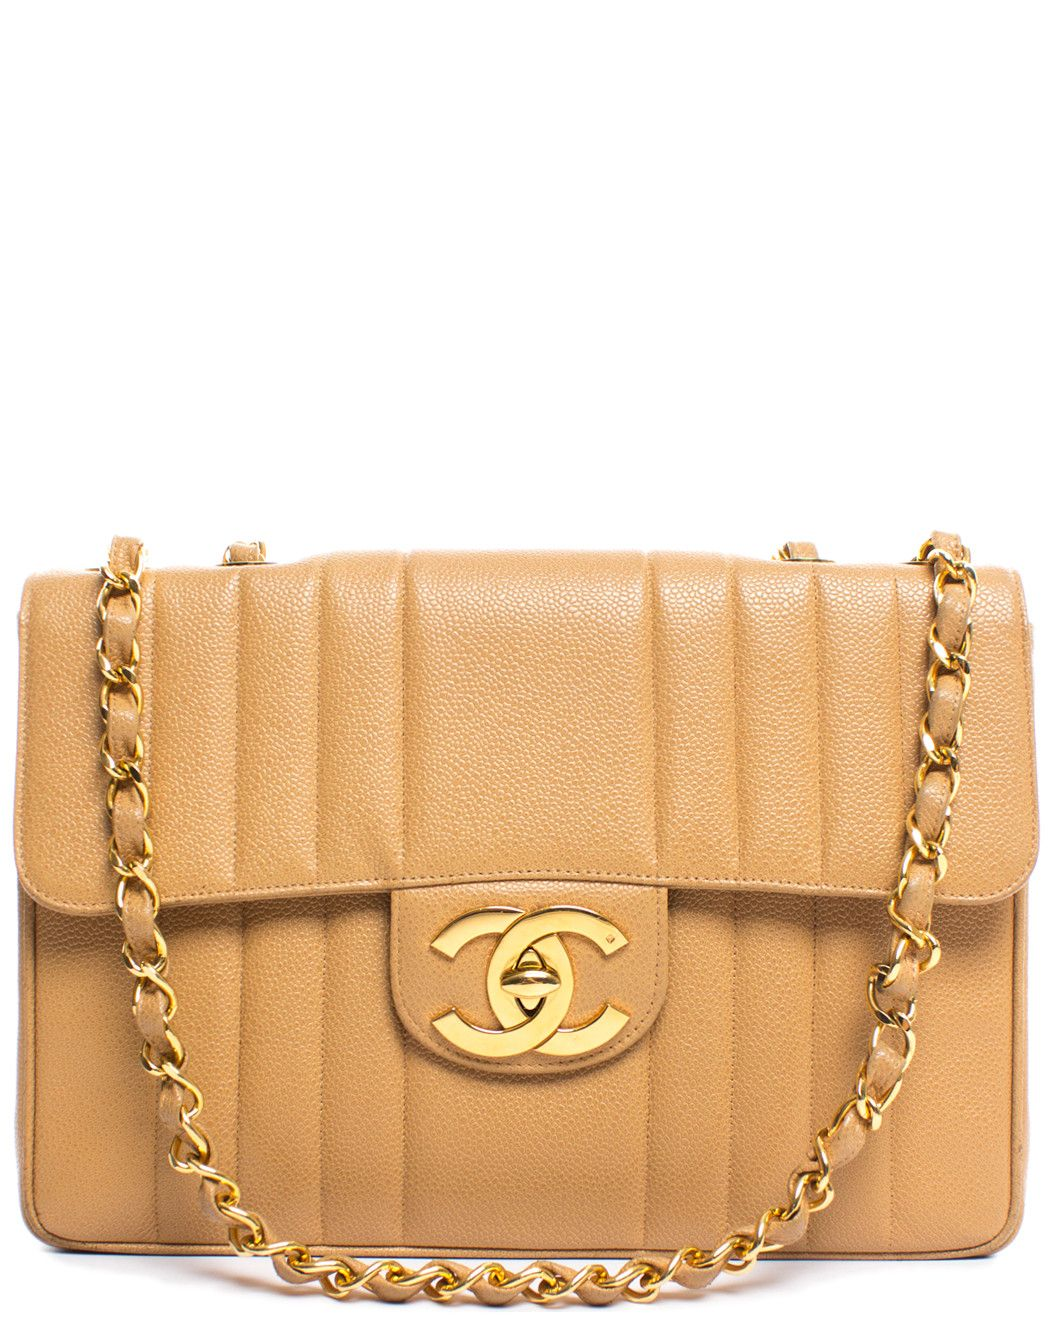 1a1f7ddeb285 Spotted this Chanel Beige Vertical Stripe Caviar Leather Jumbo Single Flap  Bag on Rue La La. Shop (quickly!)